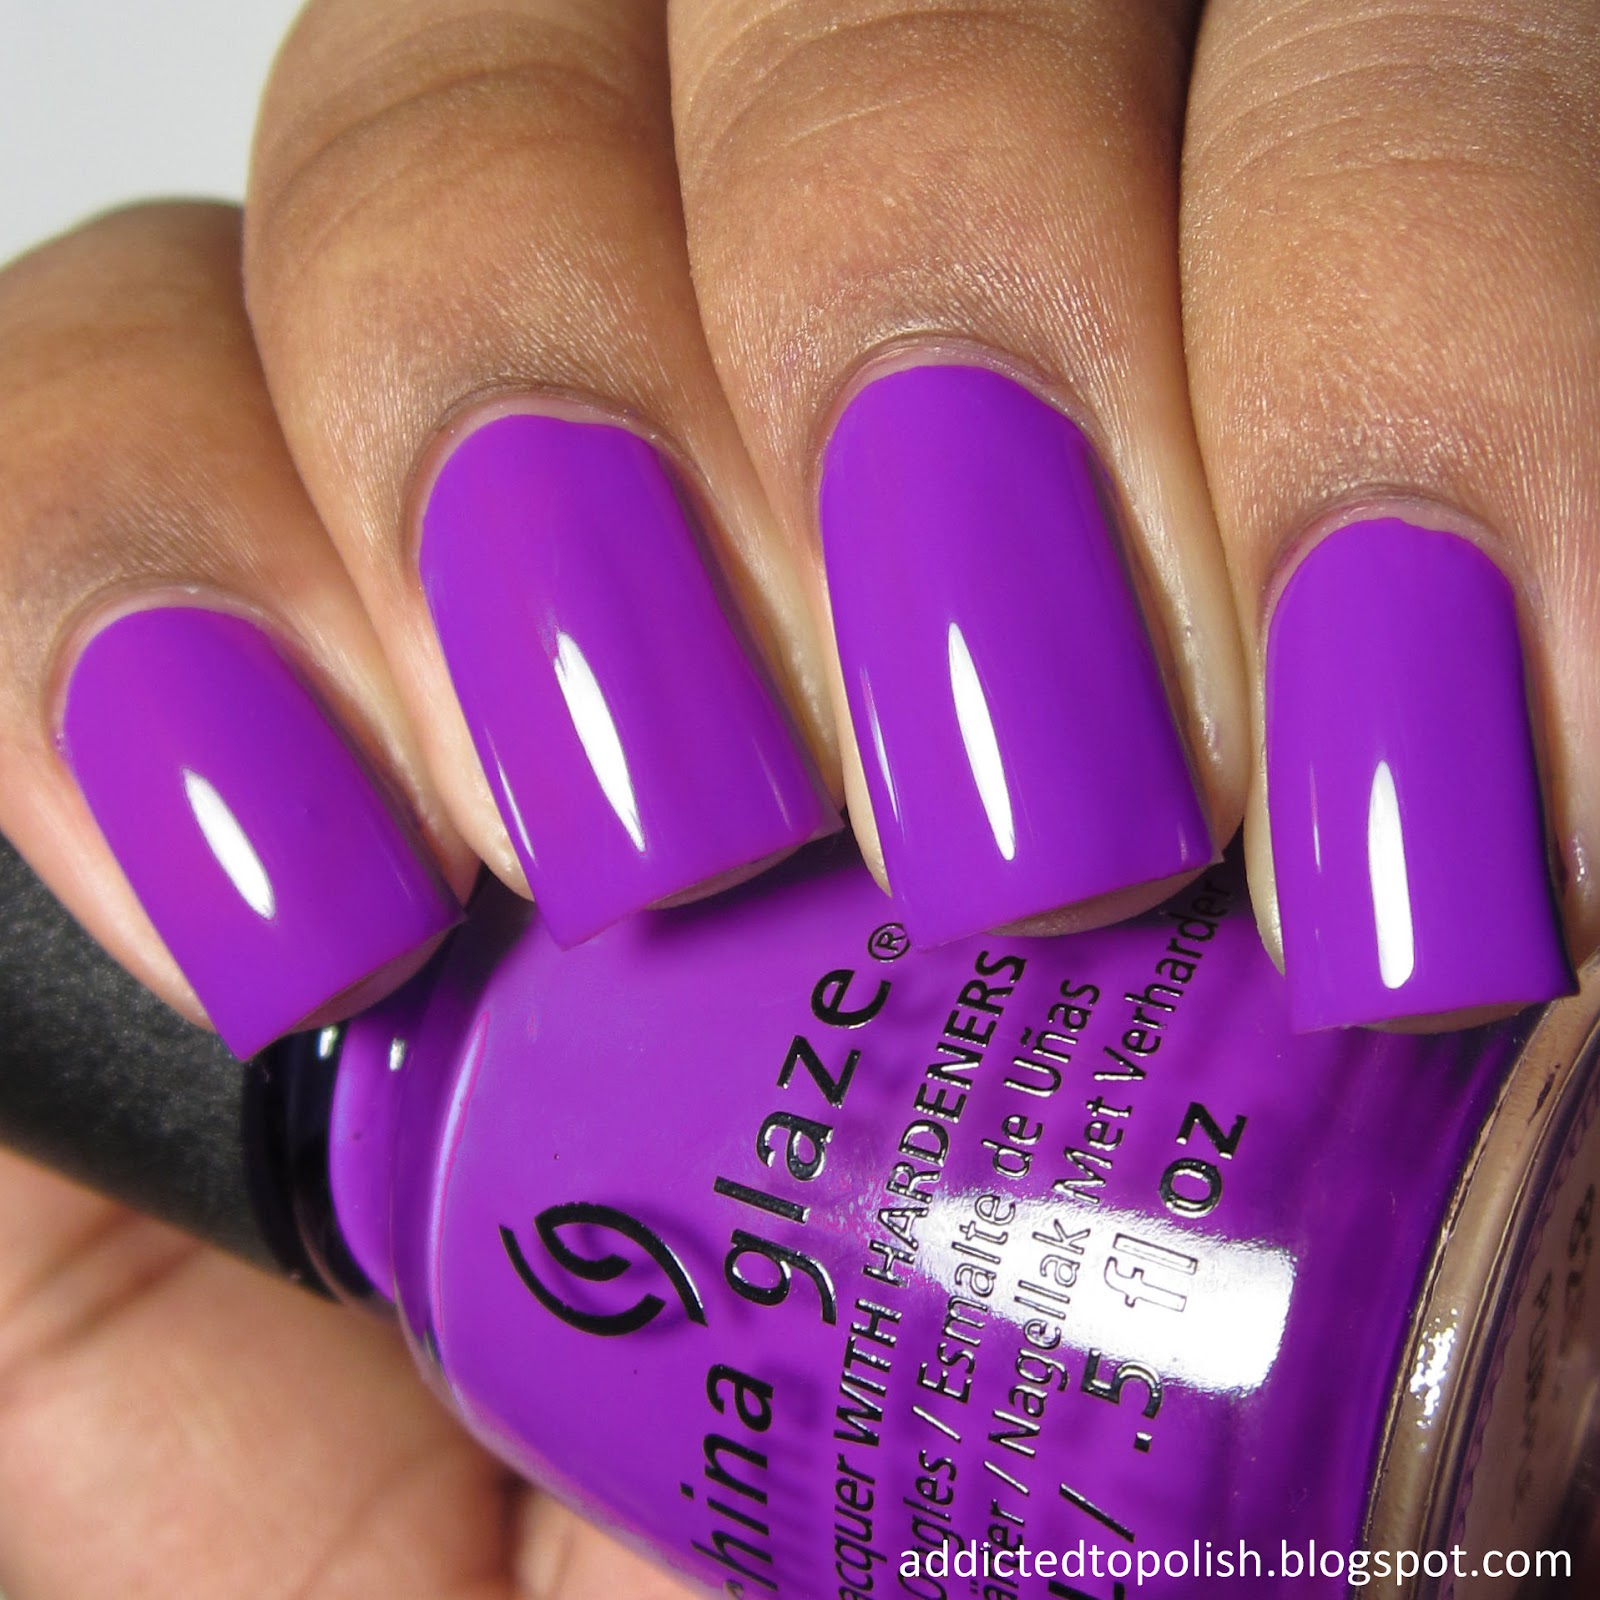 Nail Polish Archives - Beyond Beauty LoungeBeyond Beauty Lounge